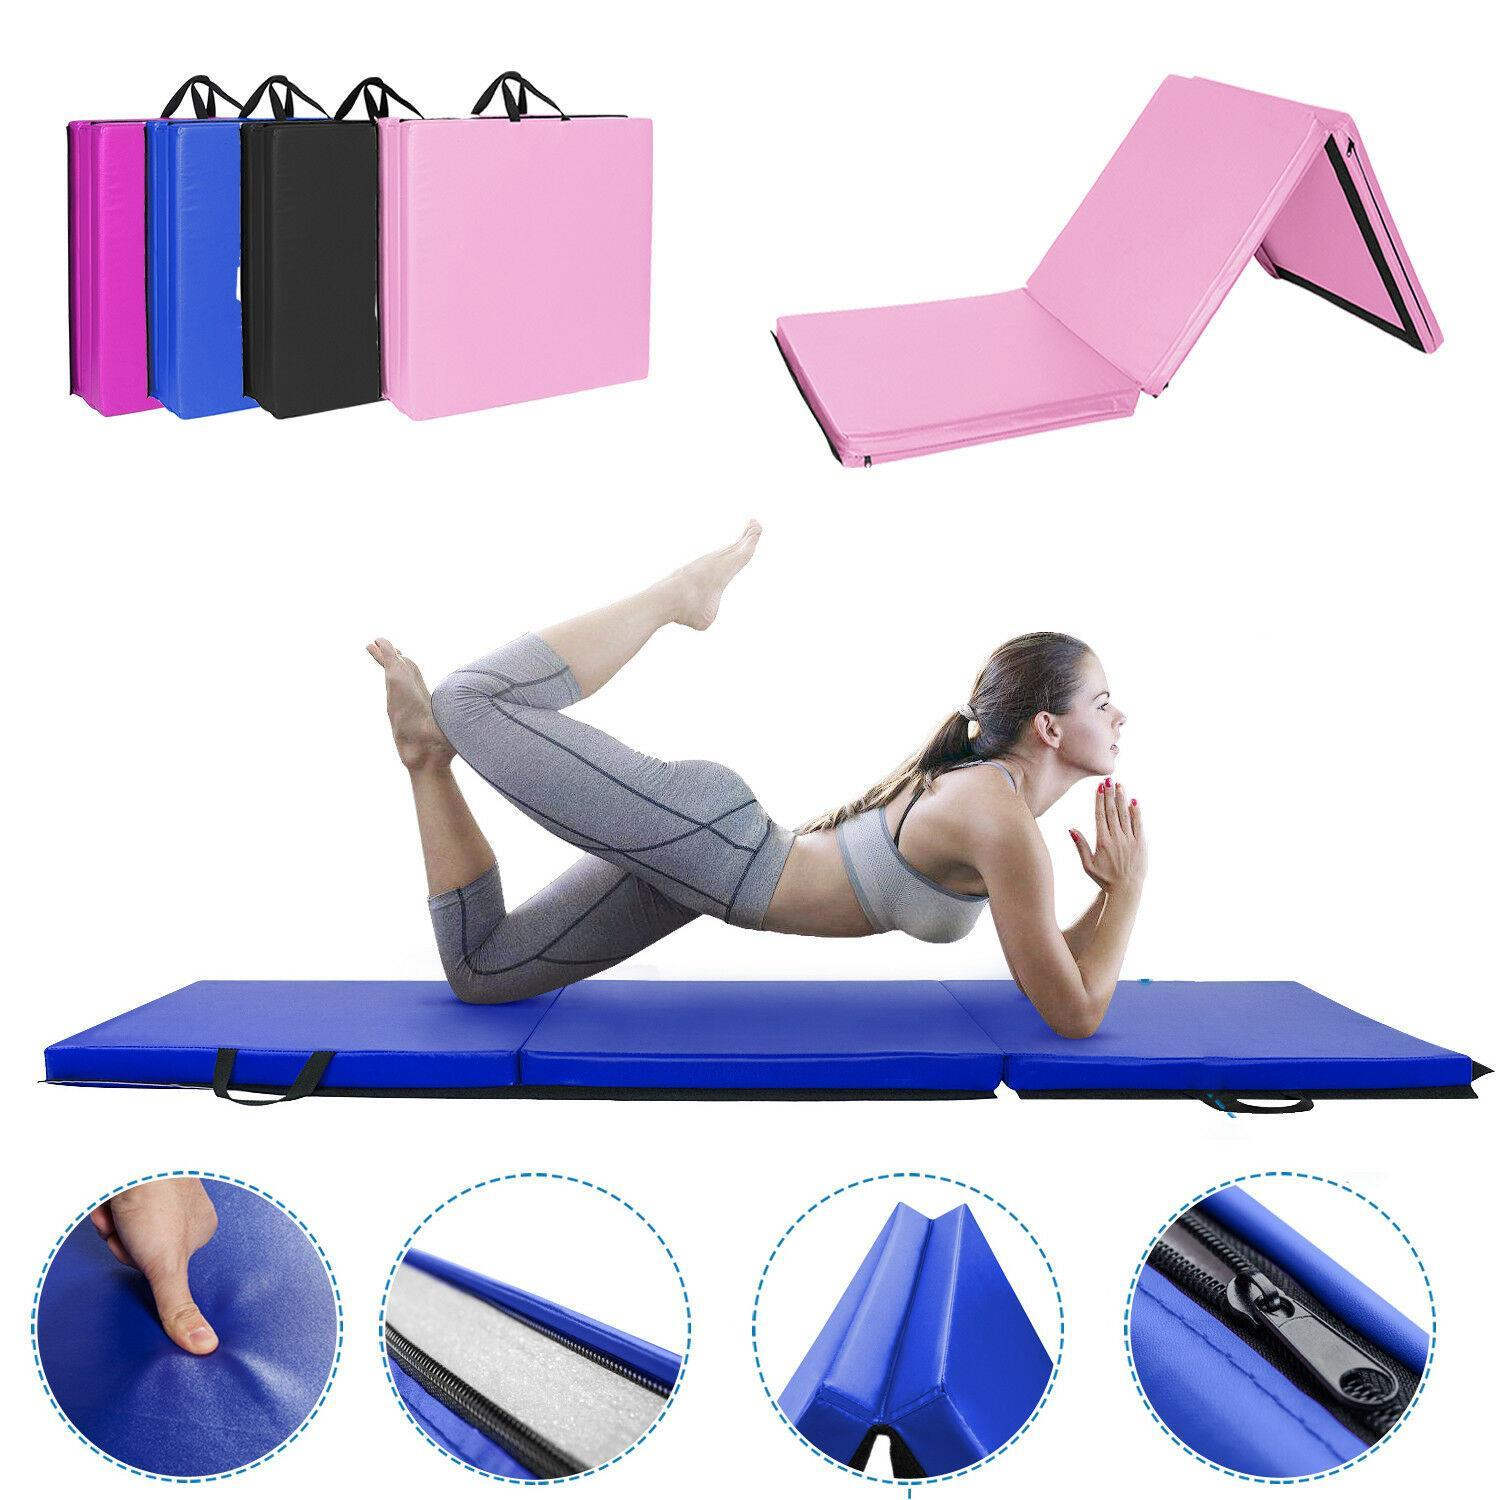 Details about  /Folding Mat Thick Foam Fitness Exercise Gymnastics Panel Gym Workout Pink